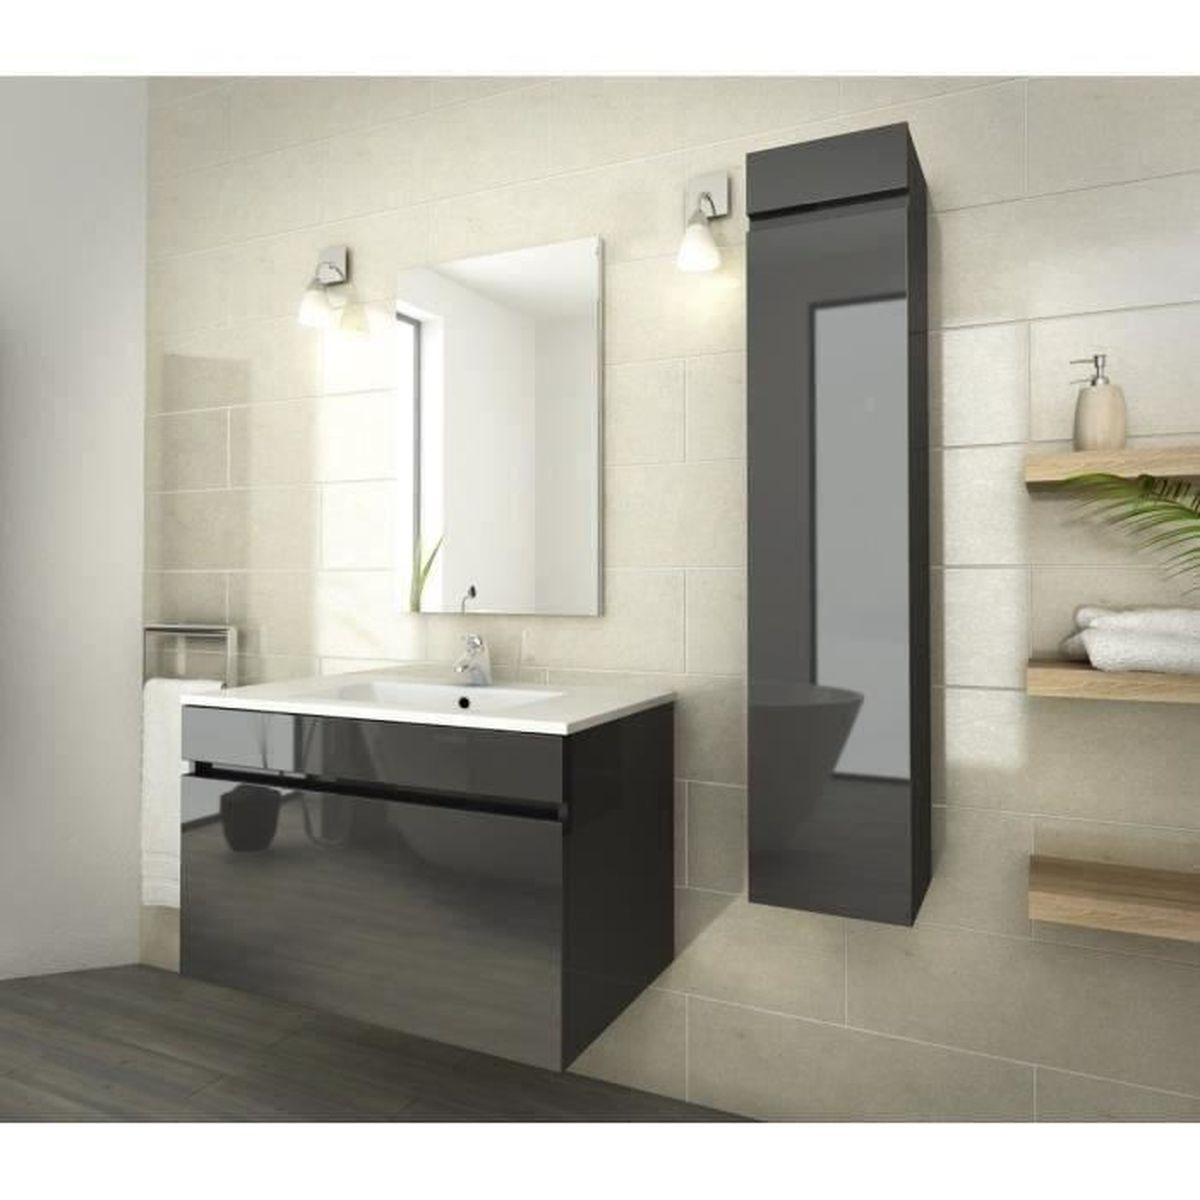 luna ensemble salle de bain simple vasque l 80 cm gris vernis achat vente salle de bain. Black Bedroom Furniture Sets. Home Design Ideas